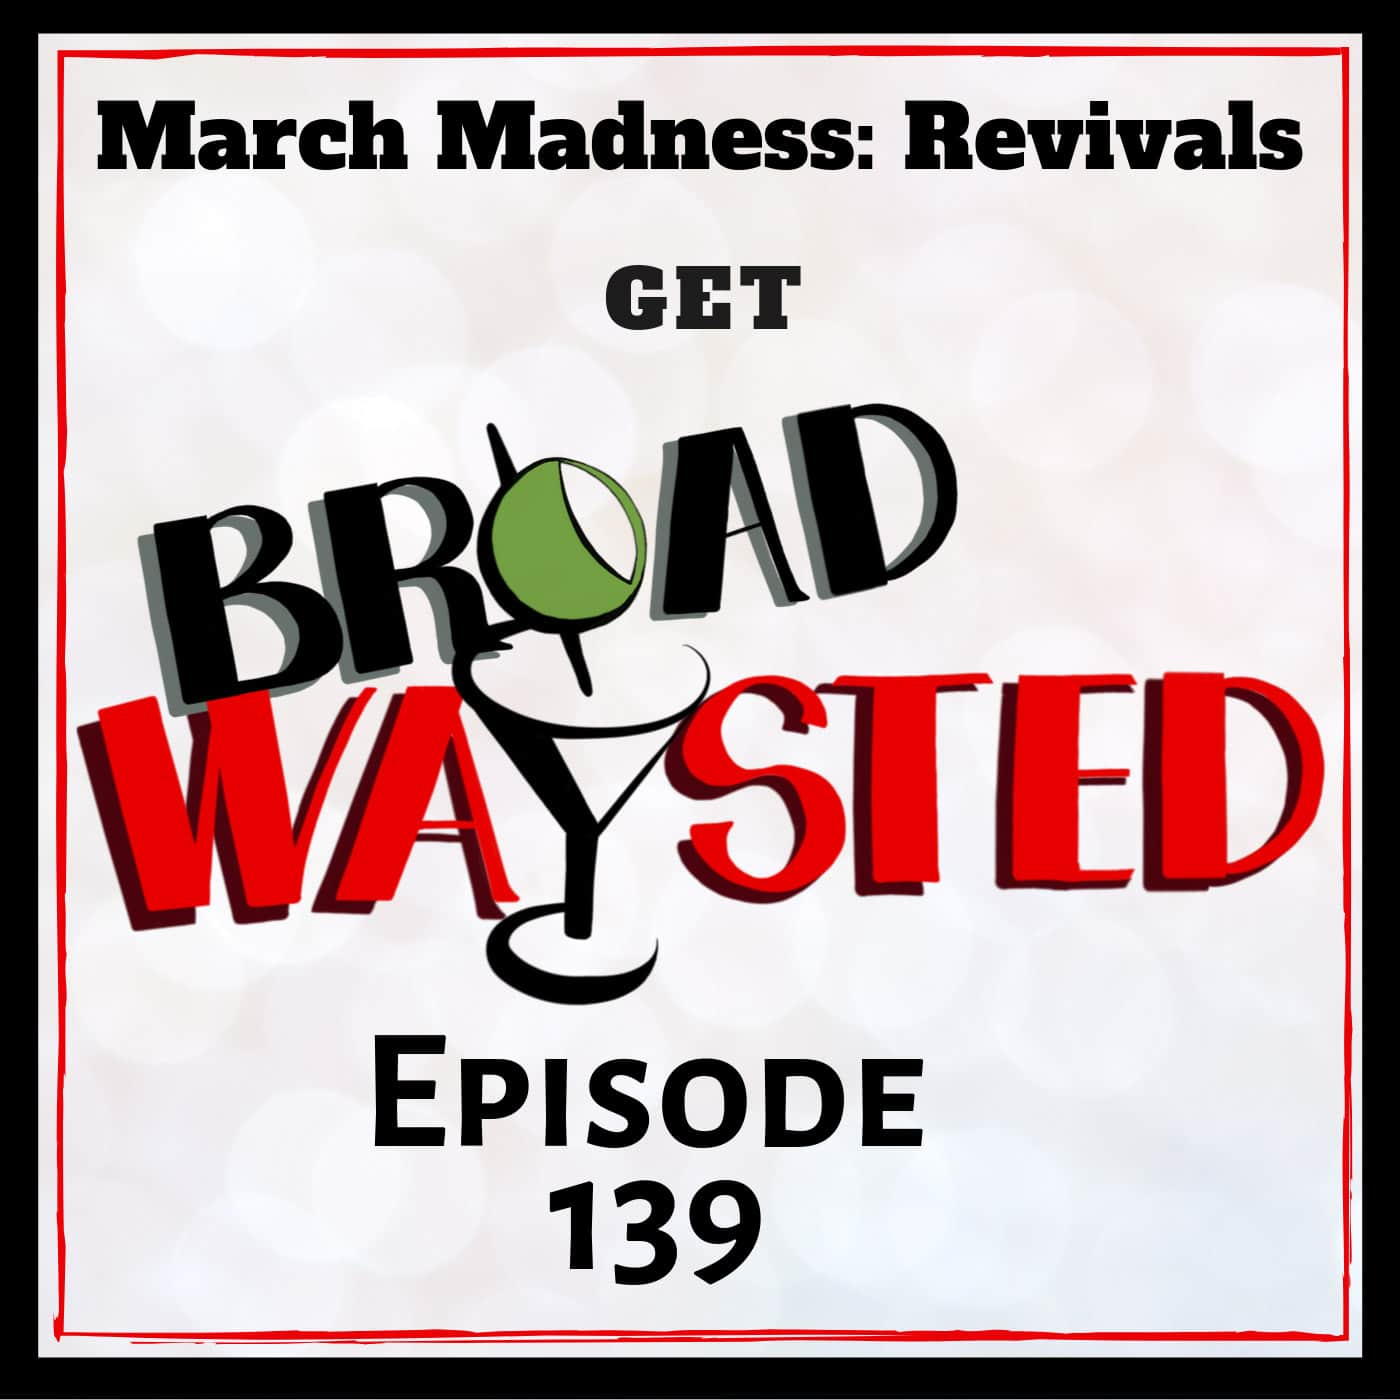 Broadwaysted Ep 139 Madness Revivals